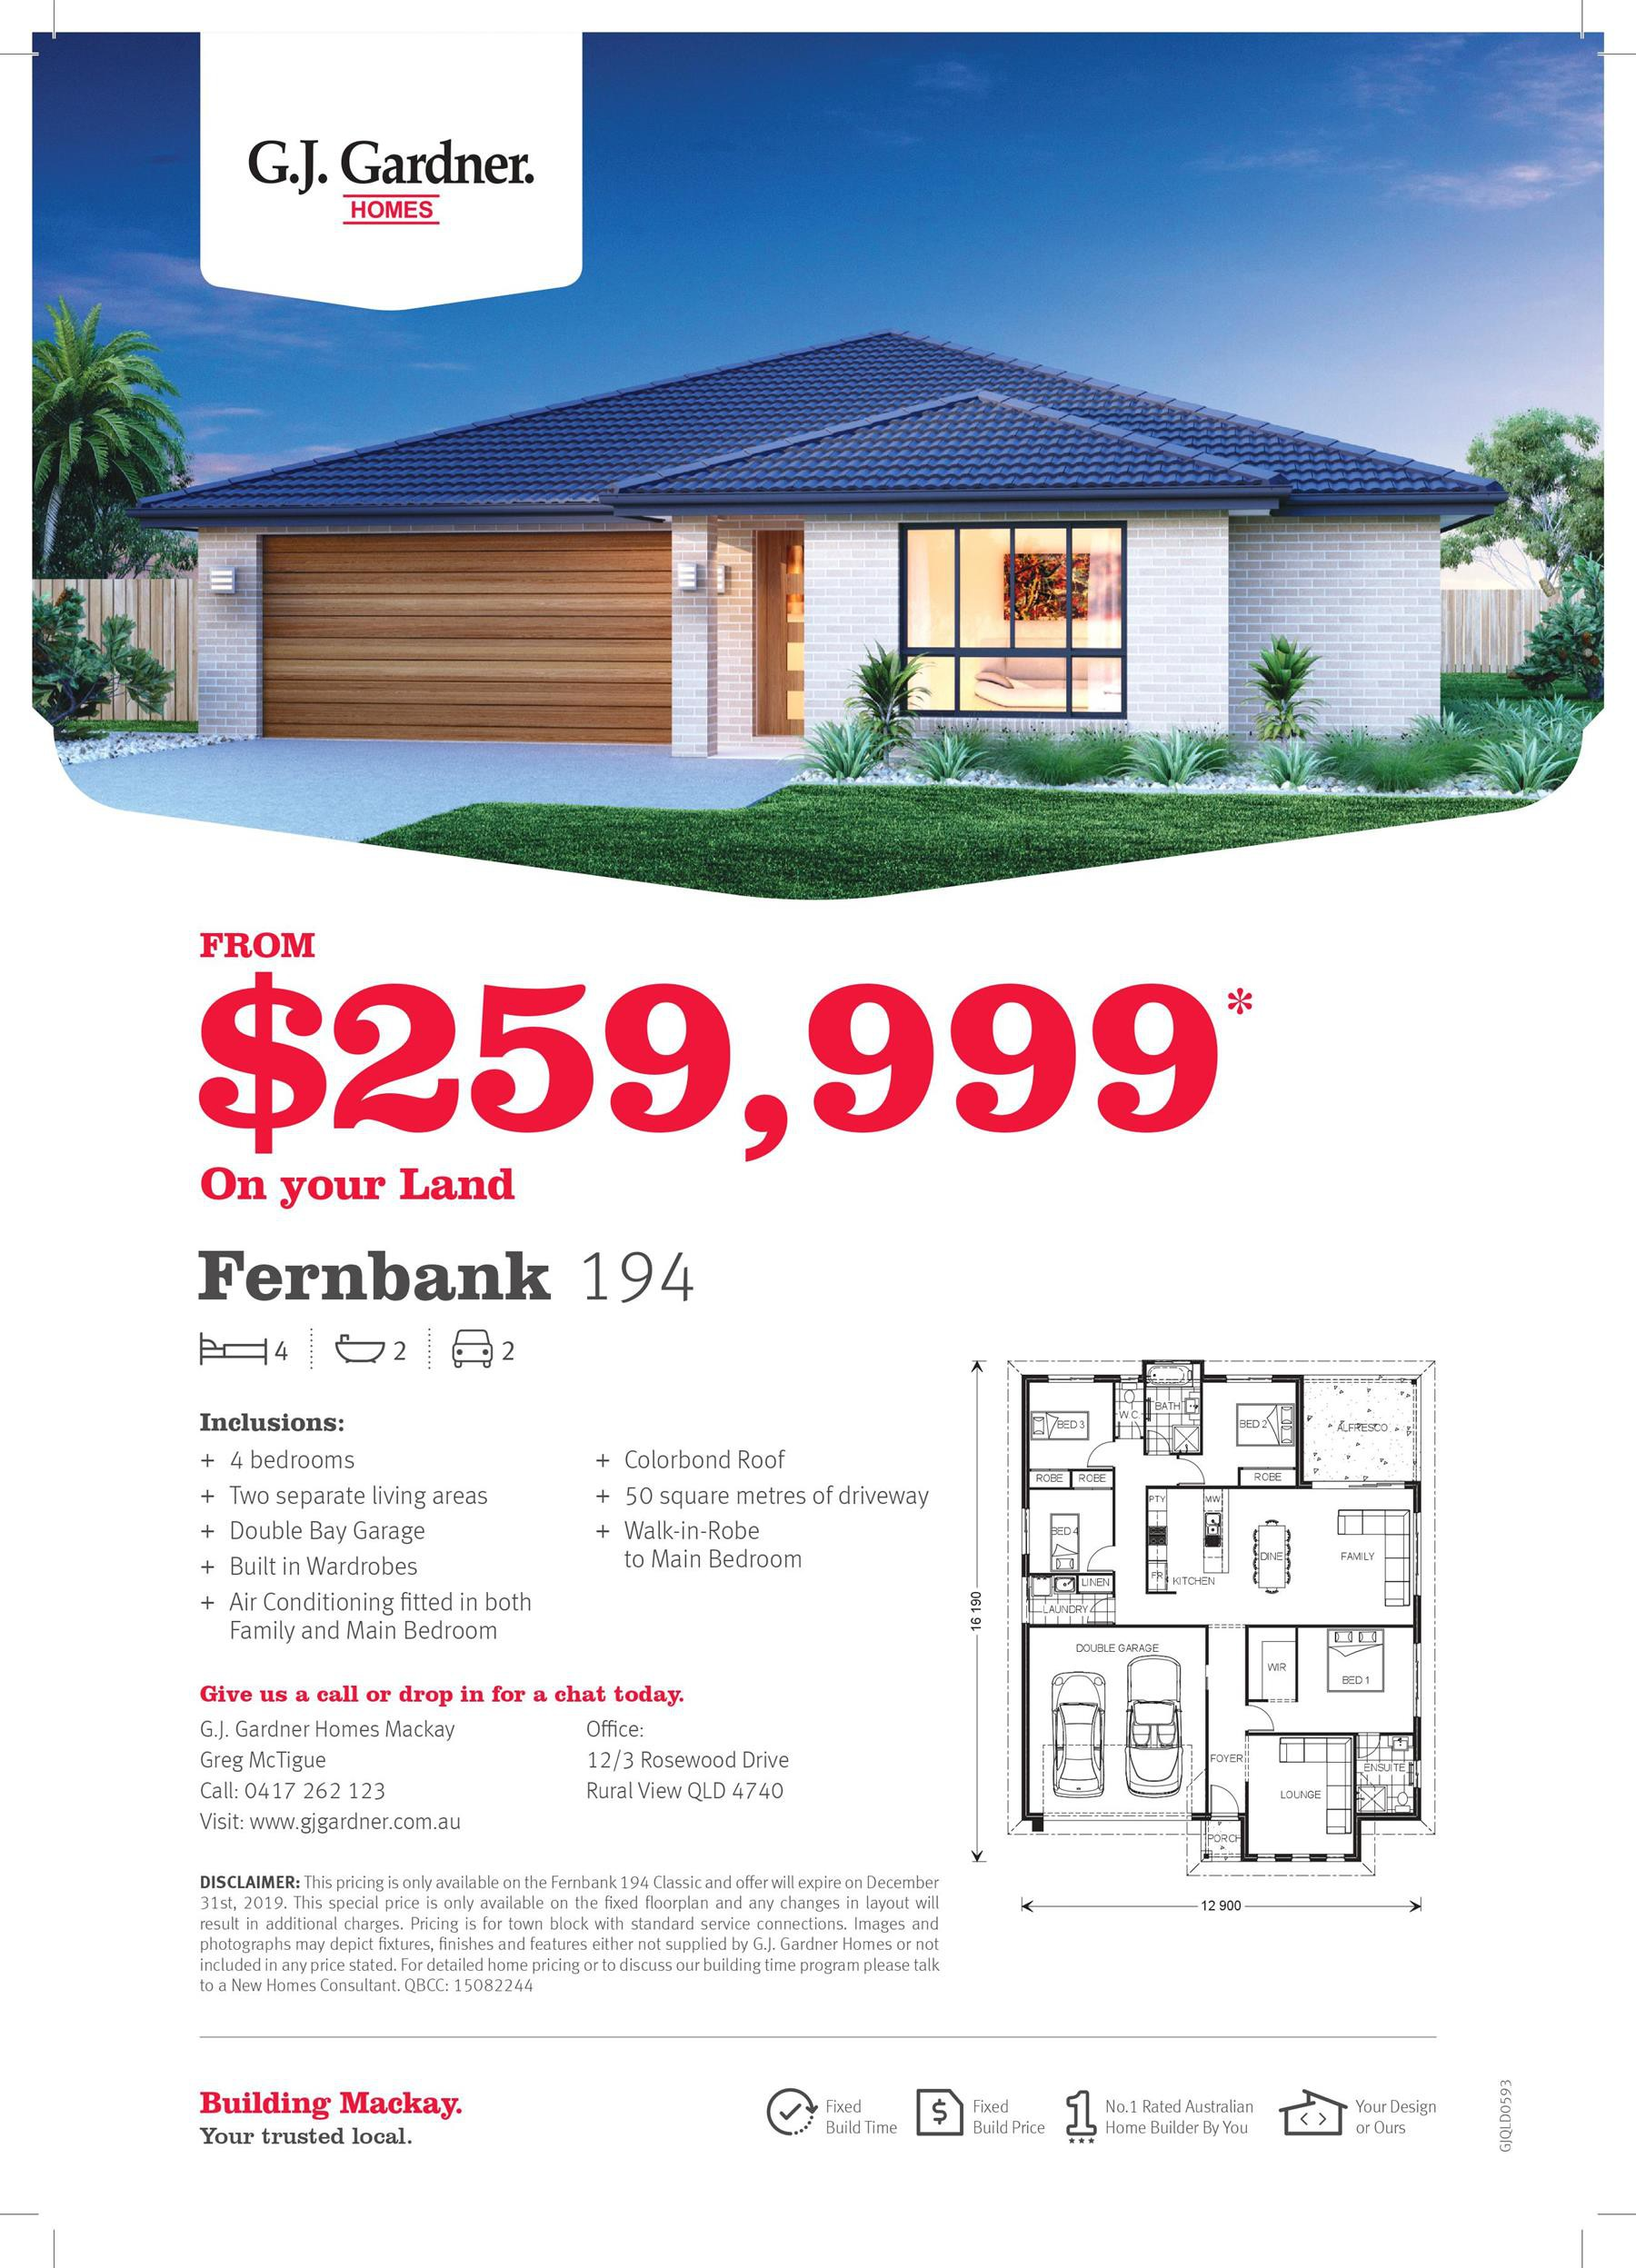 Large family home from $259,999*